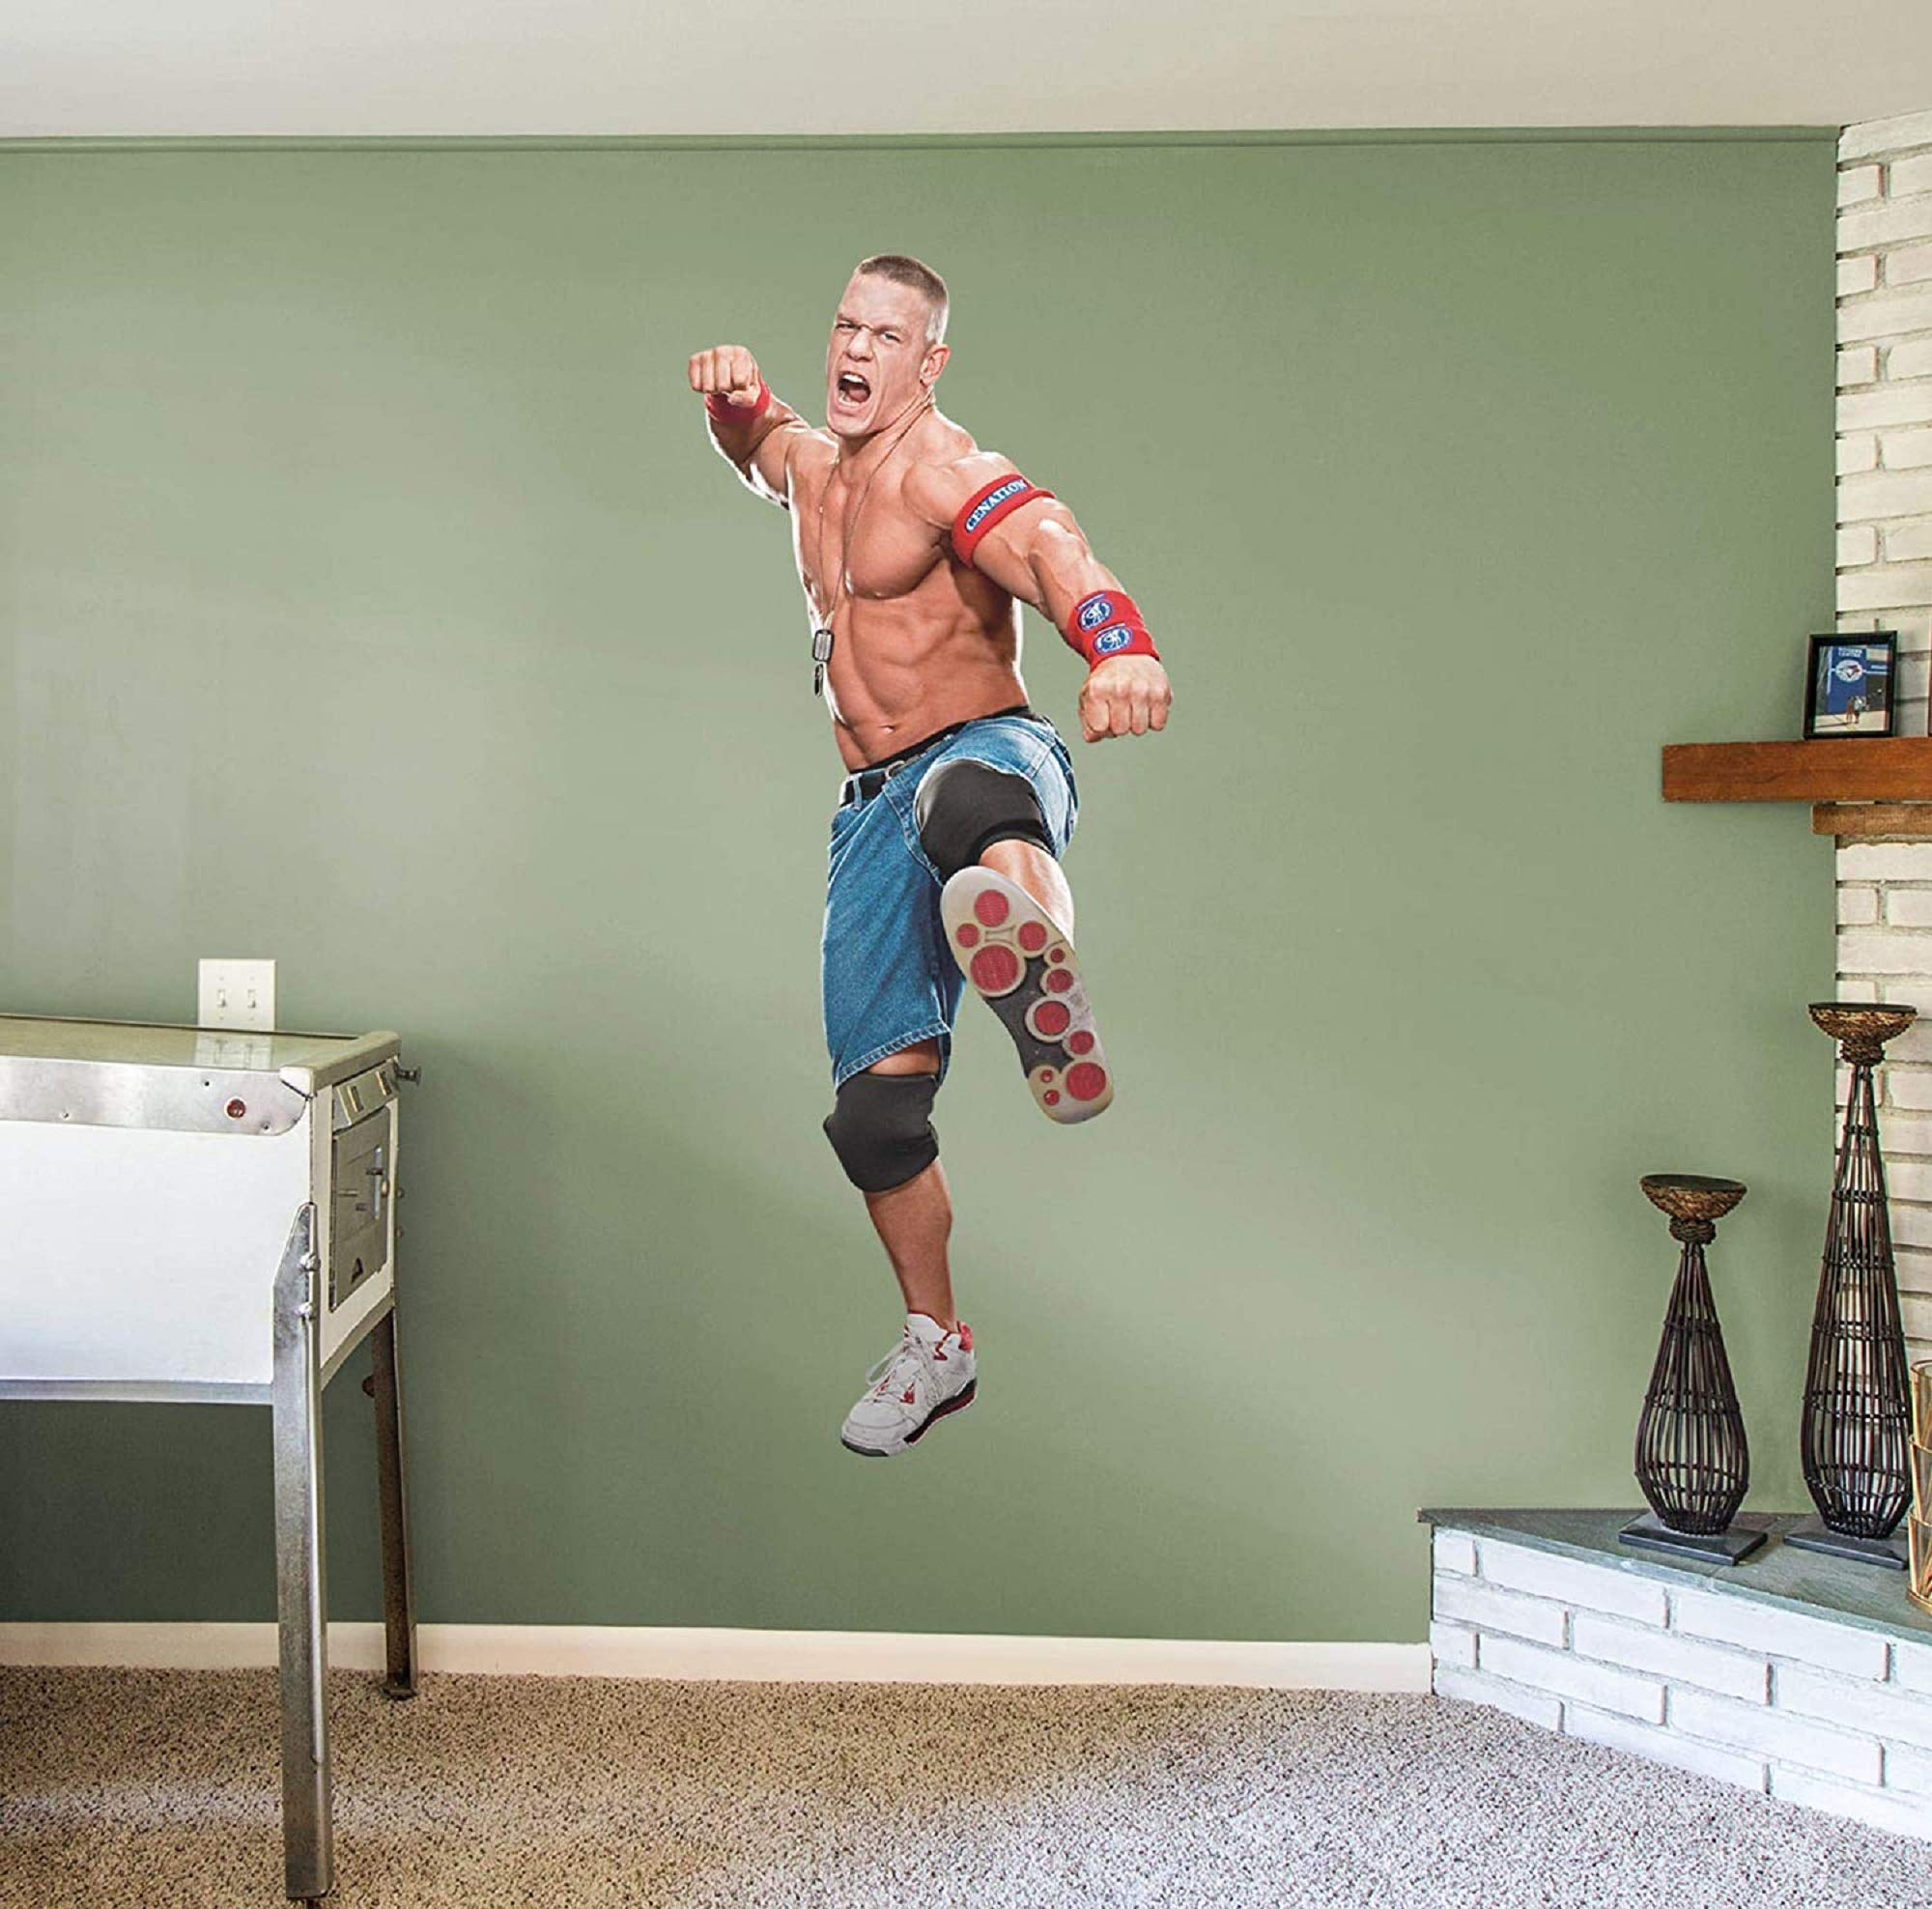 FATHEAD John Cena: Cenation - Life-Size Officially Licensed WWE Removable Wall Decal Multicolor